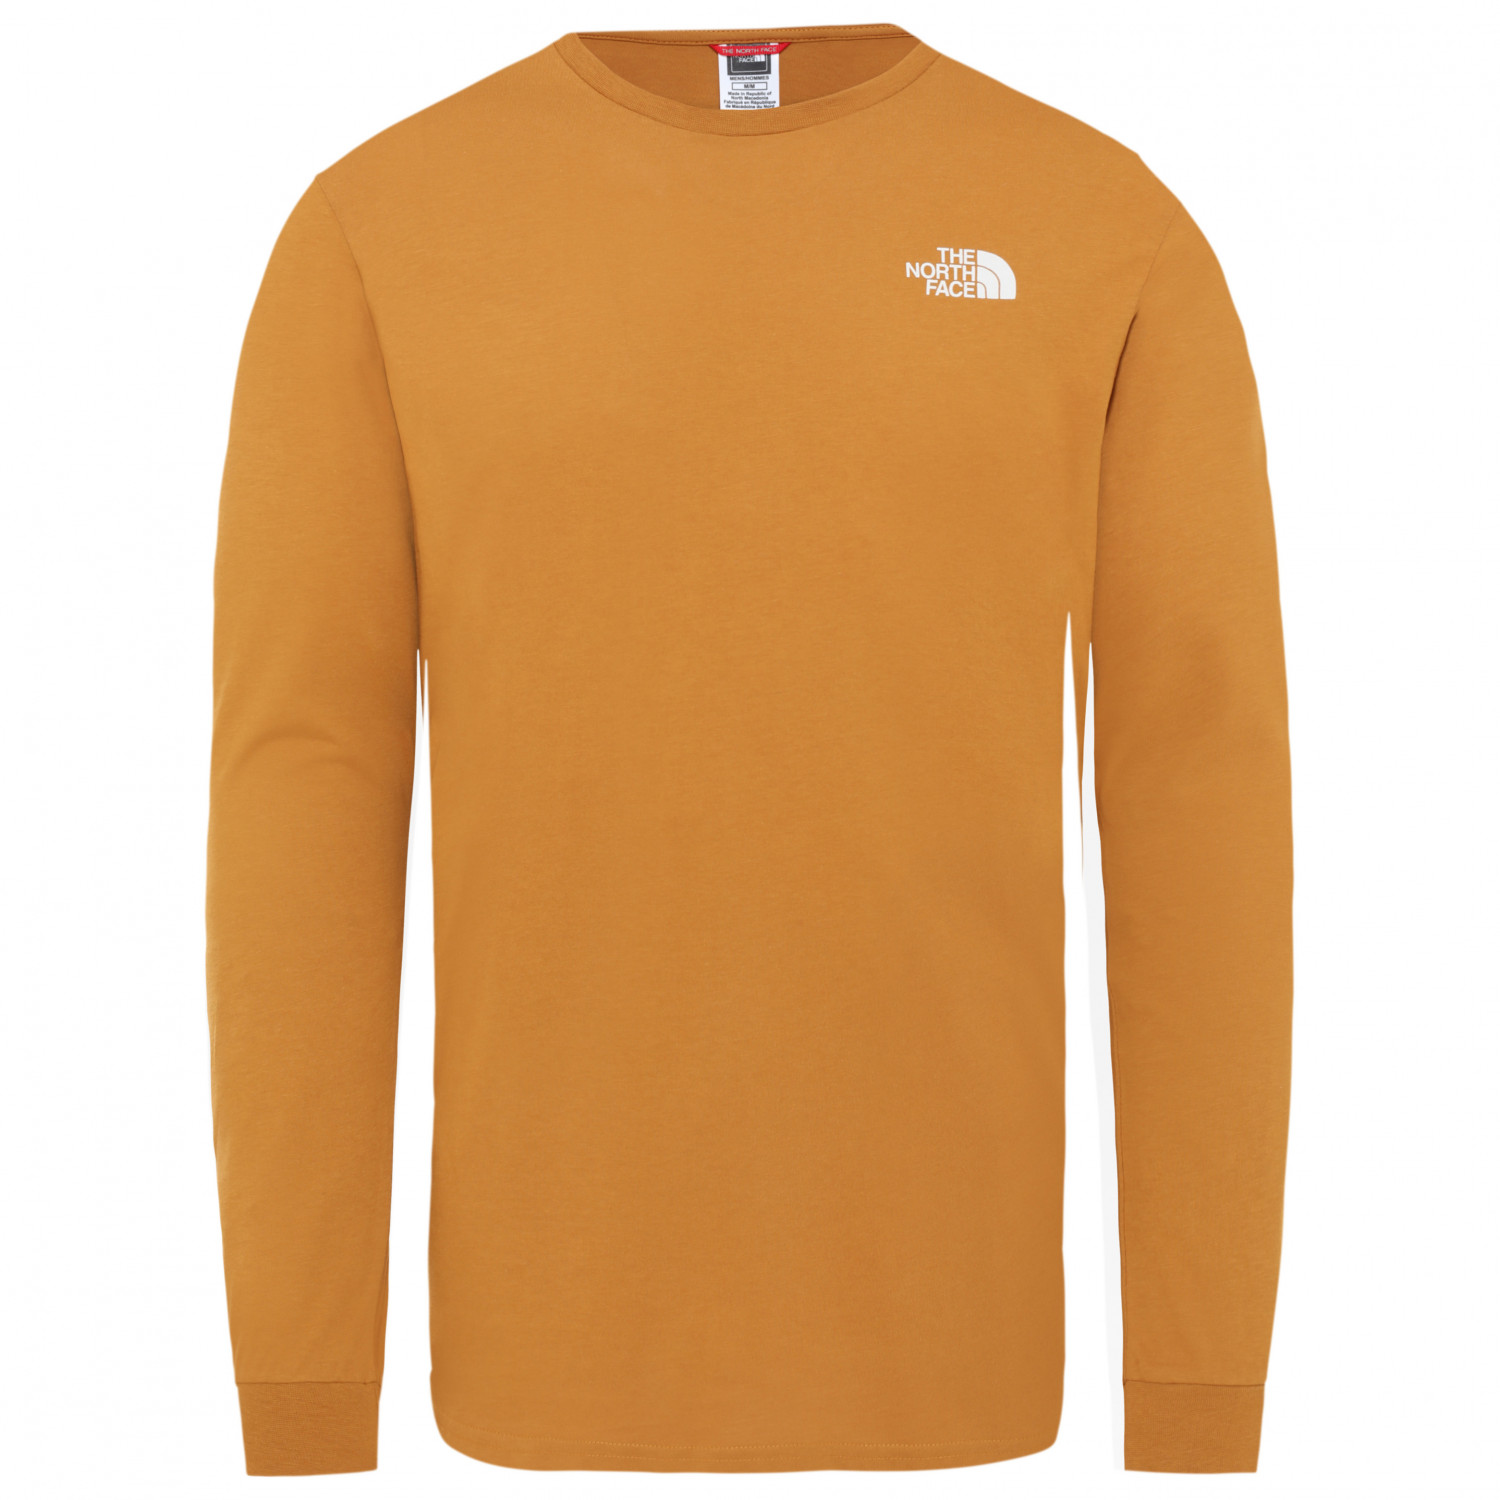 27d3a60db3fb The North Face L S Simple Dome Tee - Longsleeve Men s